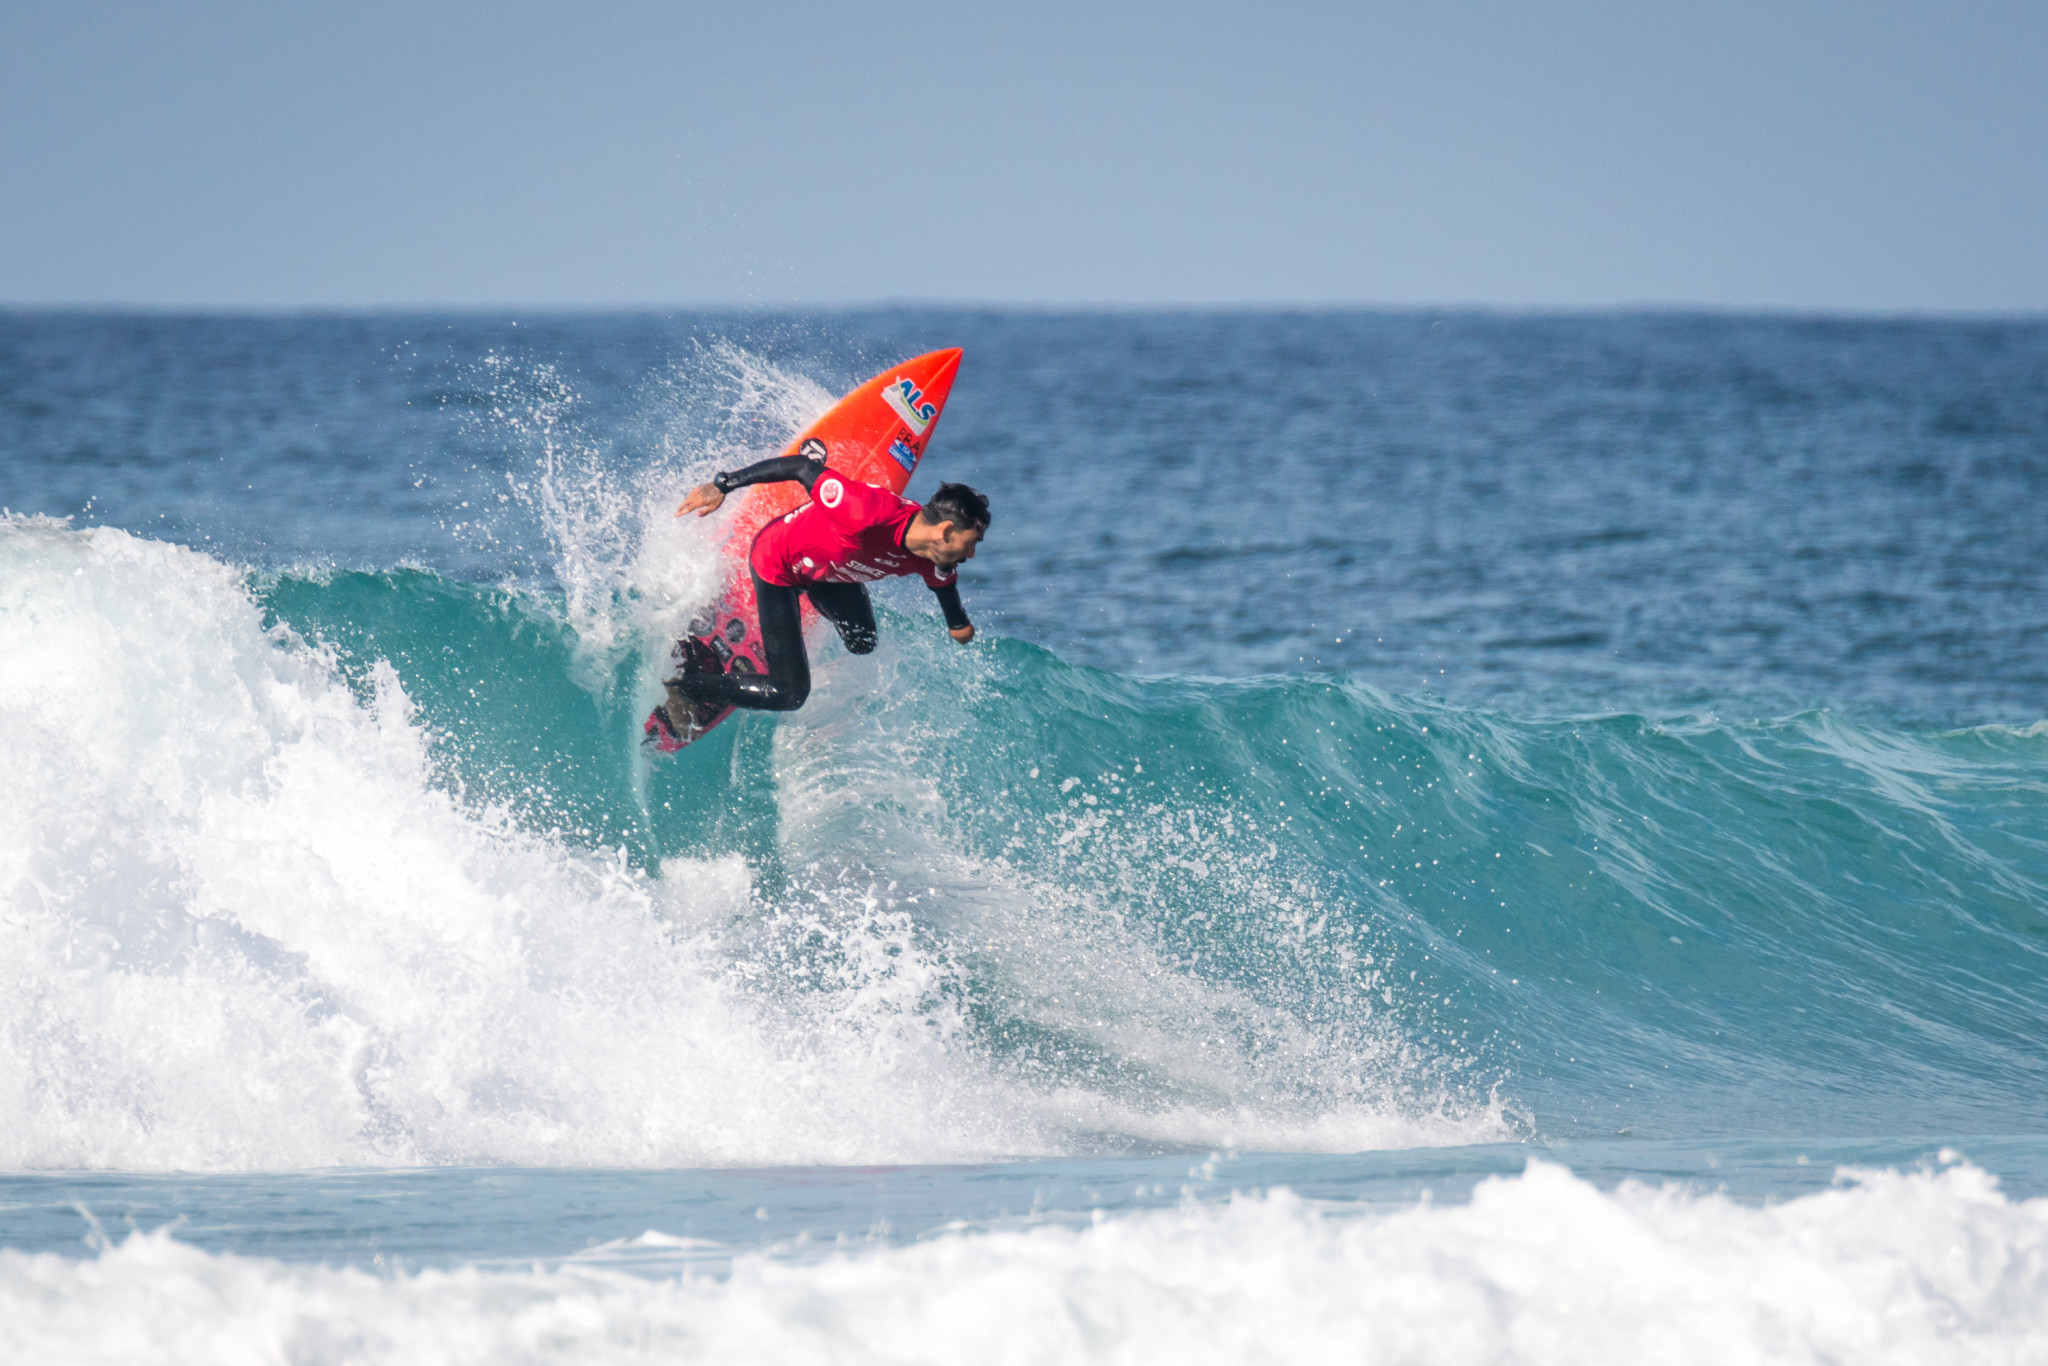 Brazil's Jonathan Borba was among the star performers in the opening day's heats ©ISA/Sean Evans